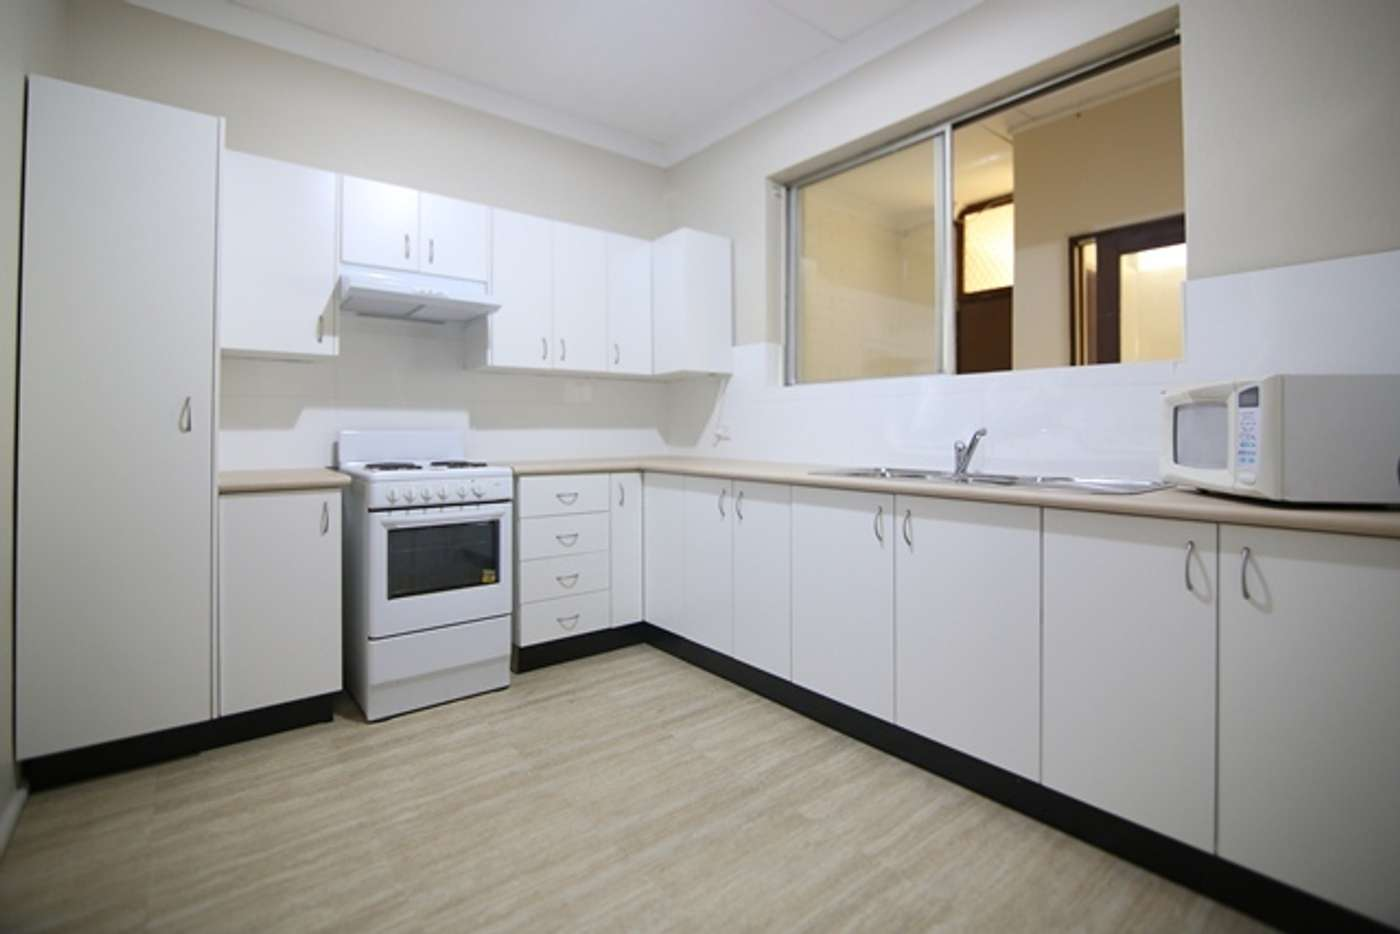 Main view of Homely unit listing, 1/51-53 Station Road, Toongabbie NSW 2146